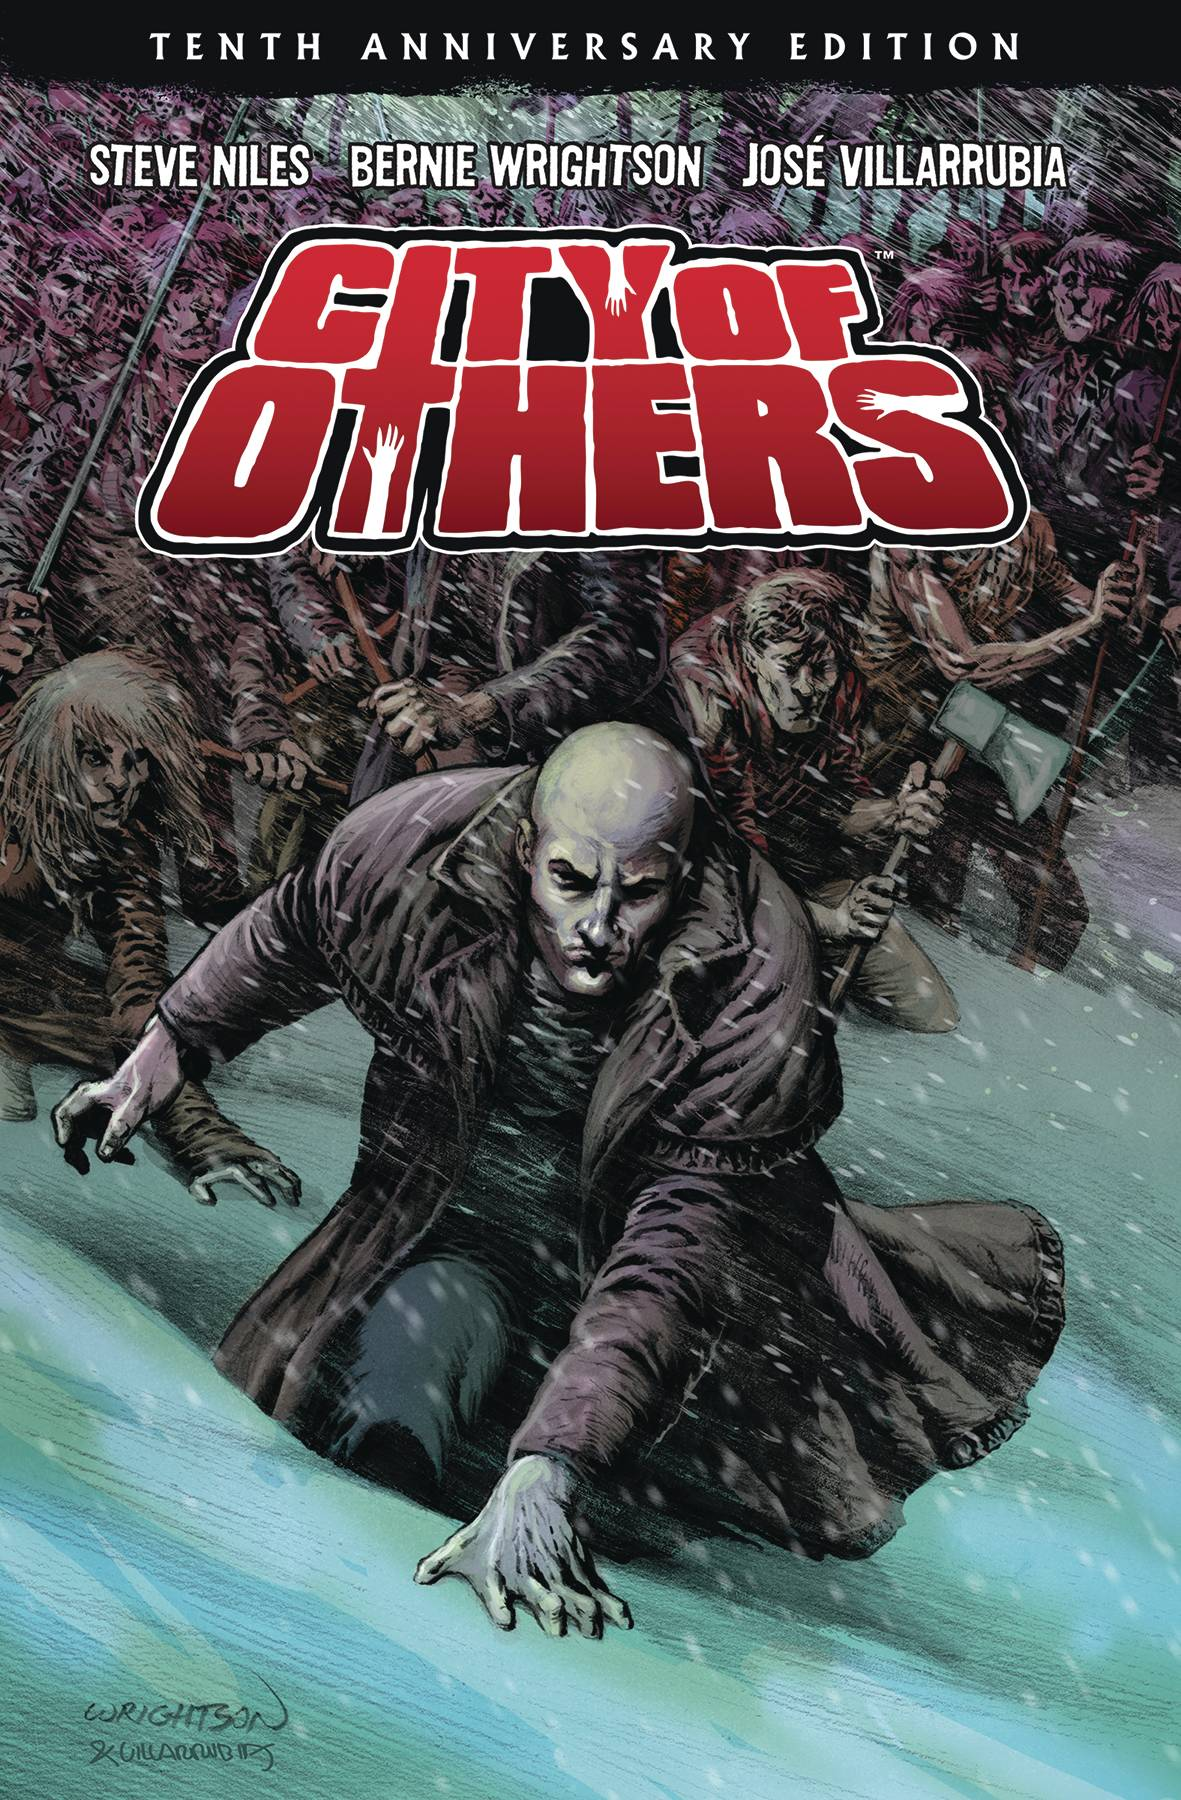 CITY OF OTHERS HC TENTH ANNIVERSARY EDITION.jpg